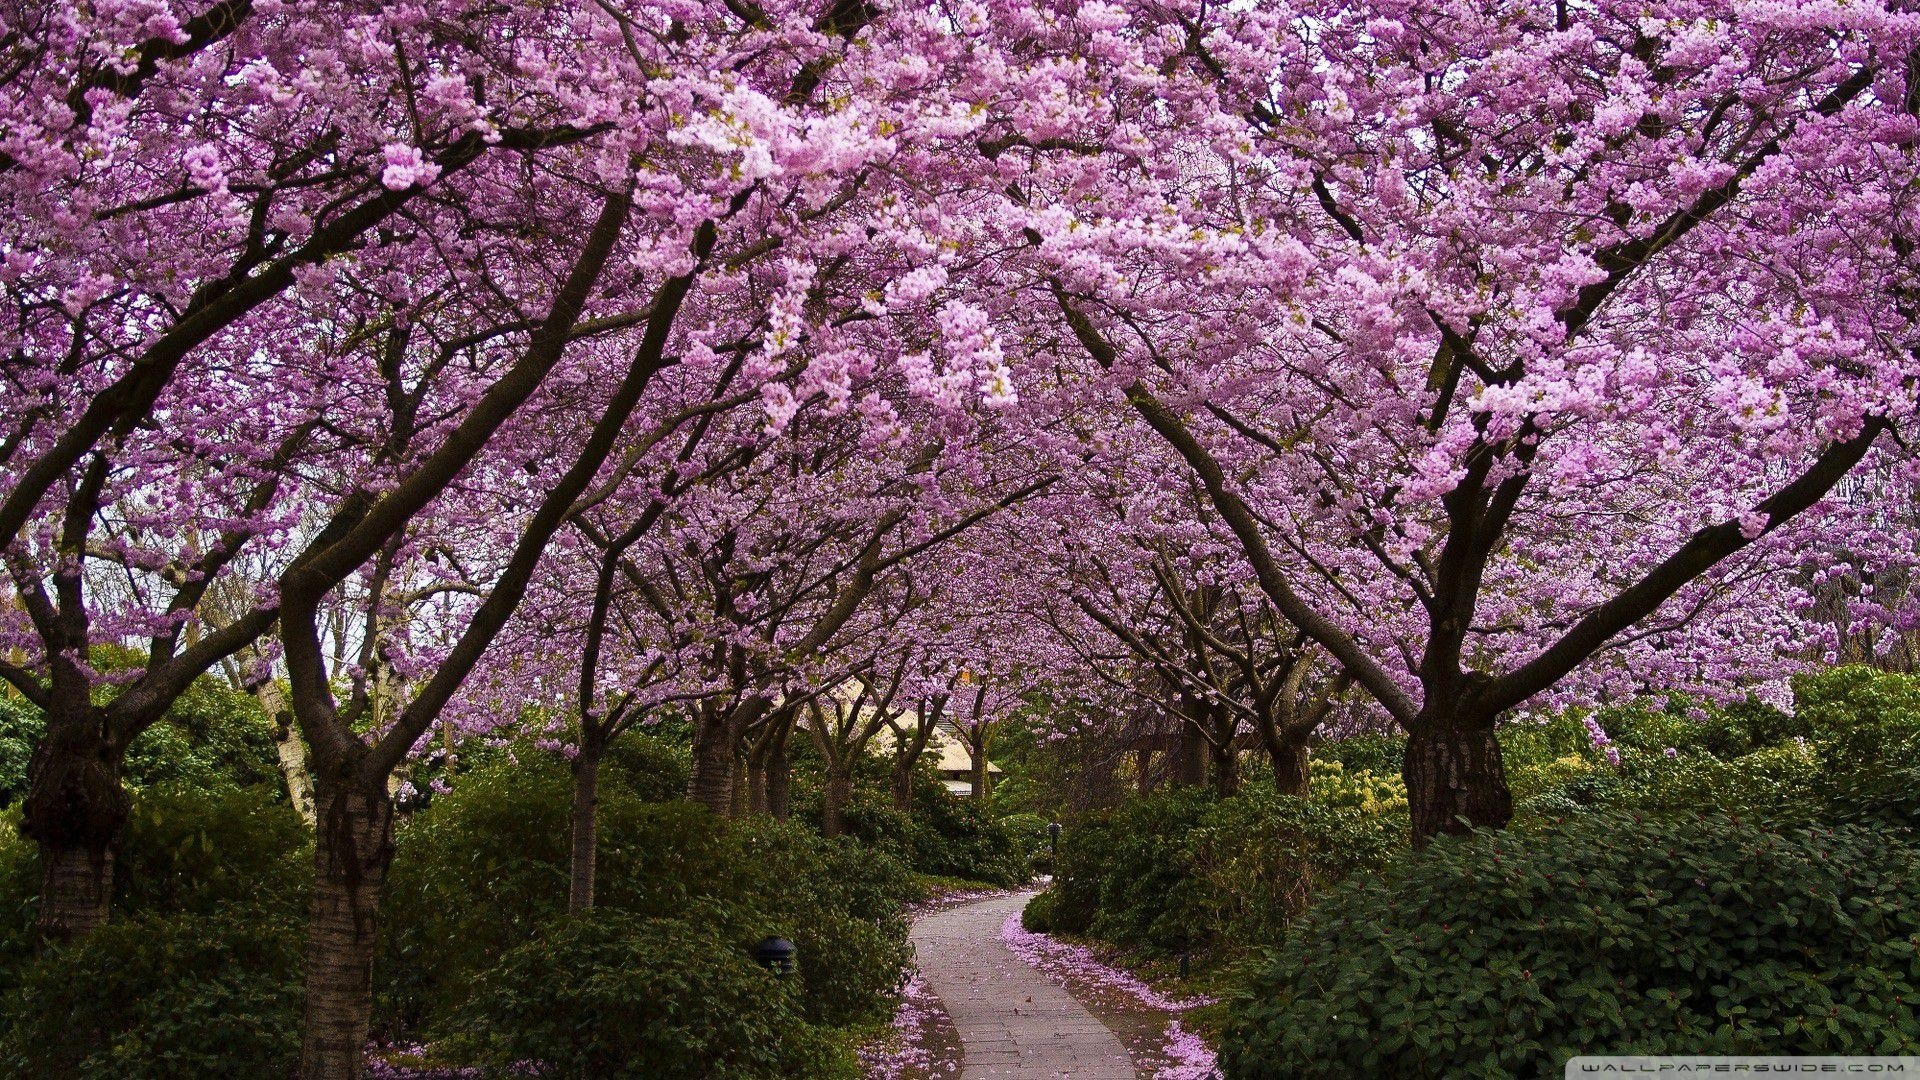 spring_pink_trees-wallpaper-1920x1080